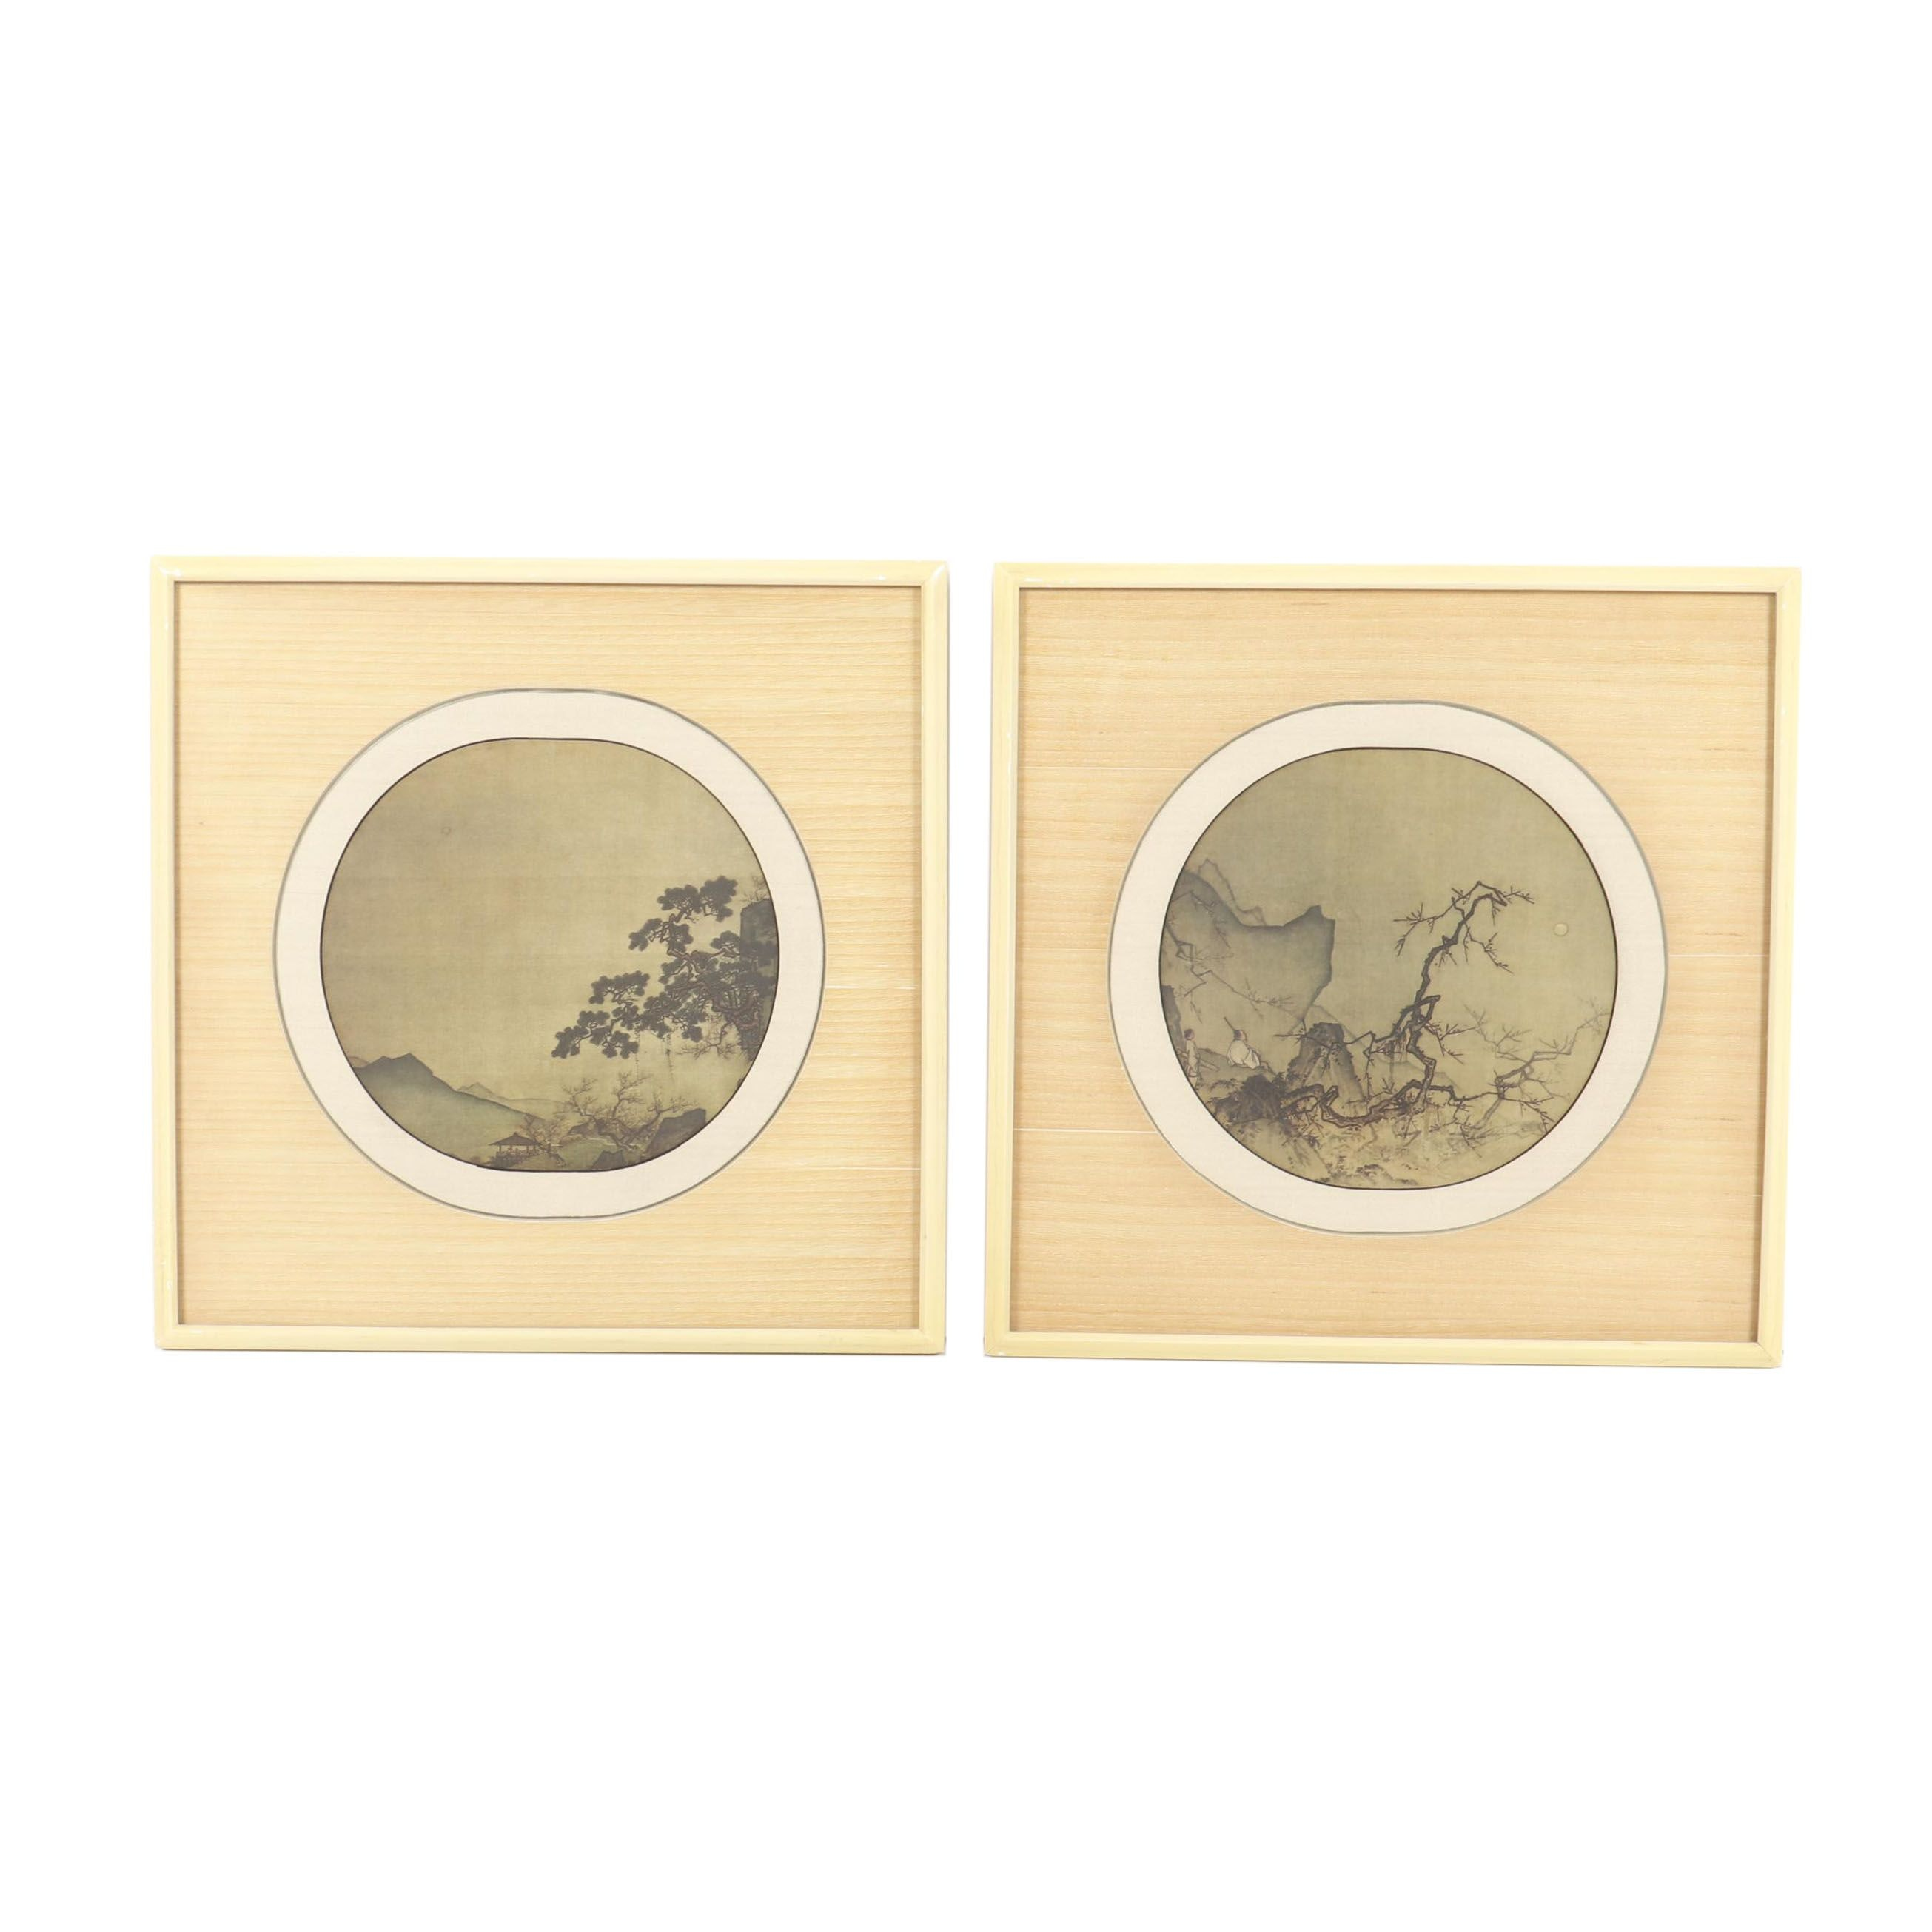 Reproduction Lithographs of Chinese Folding Fans